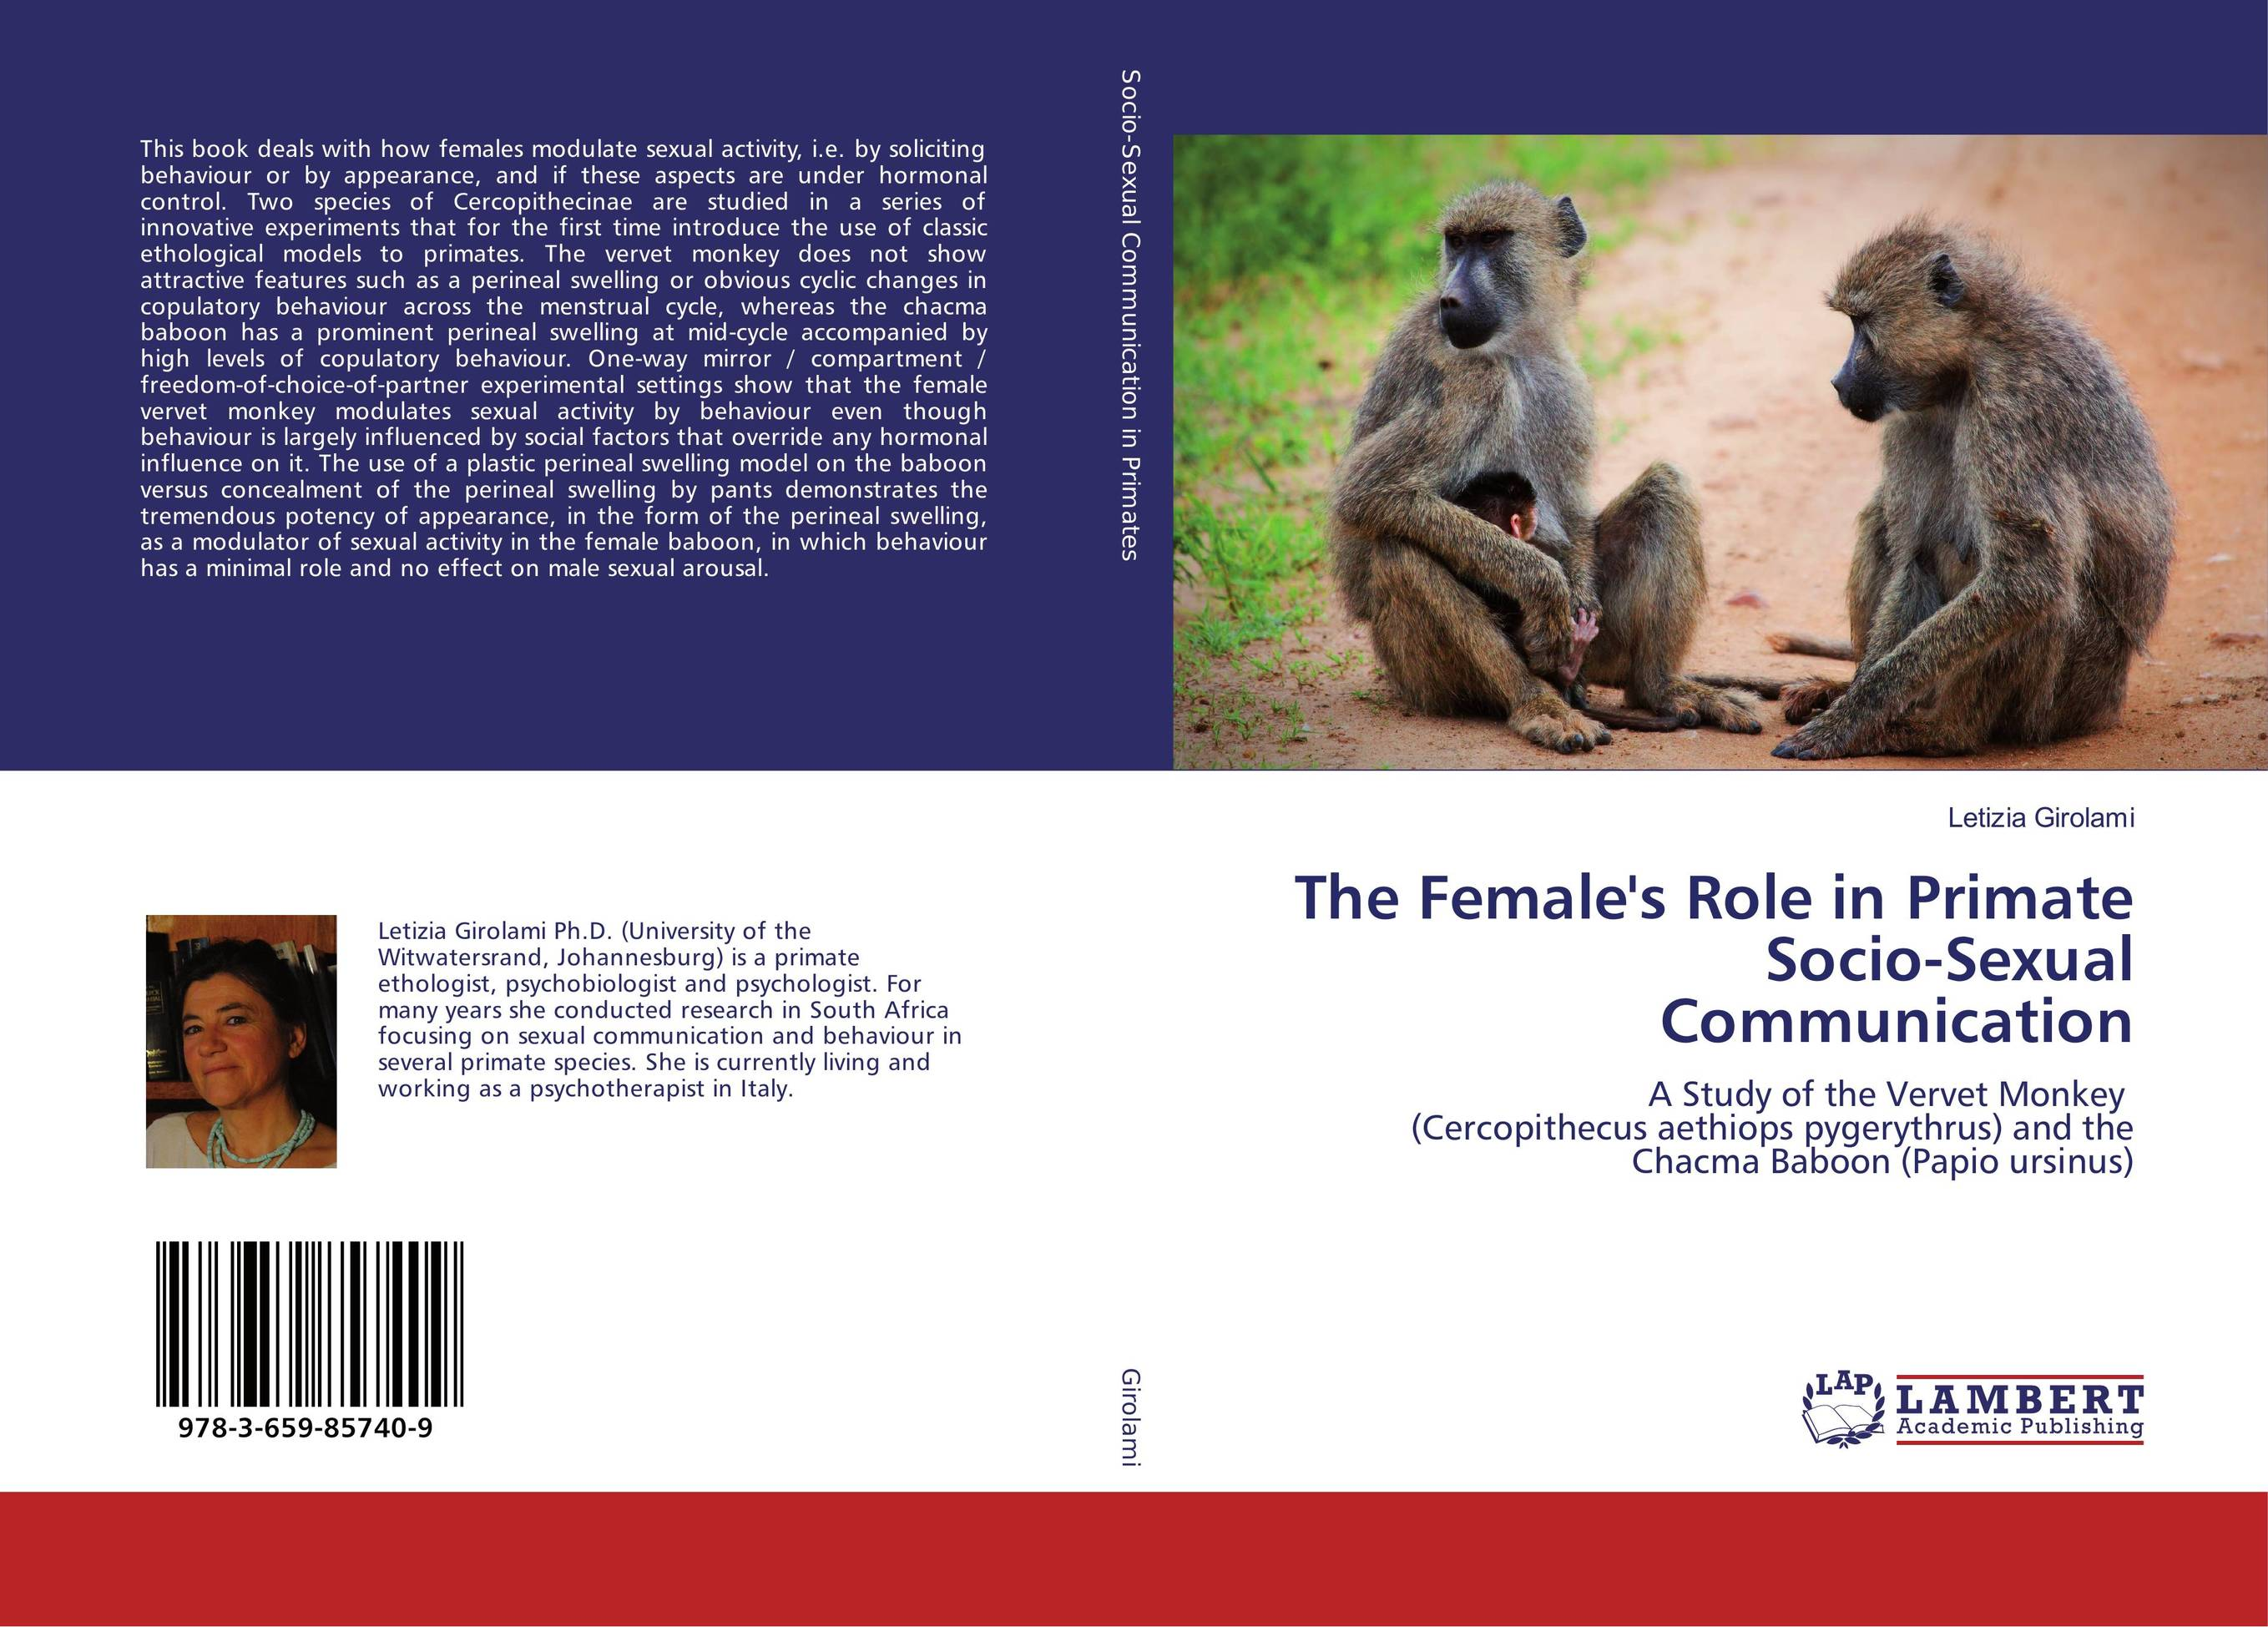 The Female's Role in Primate Socio-Sexual Communication rakesh kumar balbir singh kaith and anshul sharma psyllium based polymer and their salt resistant swelling behaviour